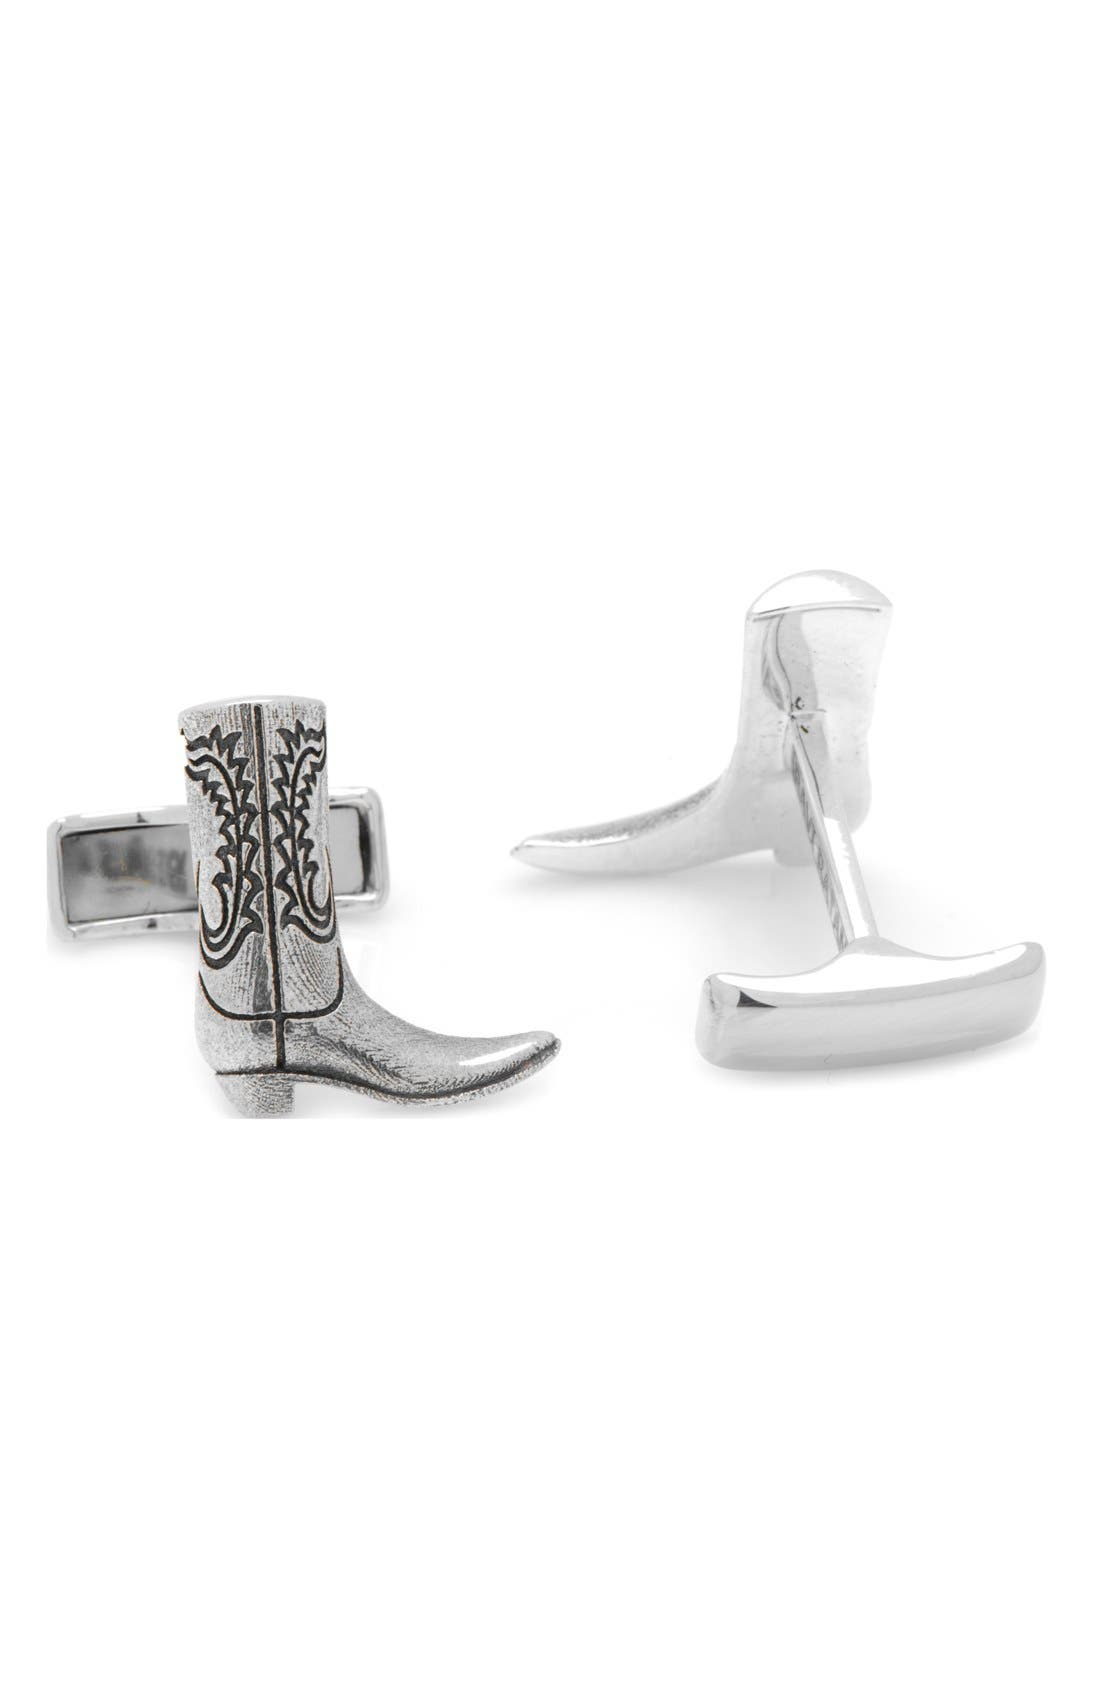 OX AND BULL TRADING CO. Boot Cuff Links